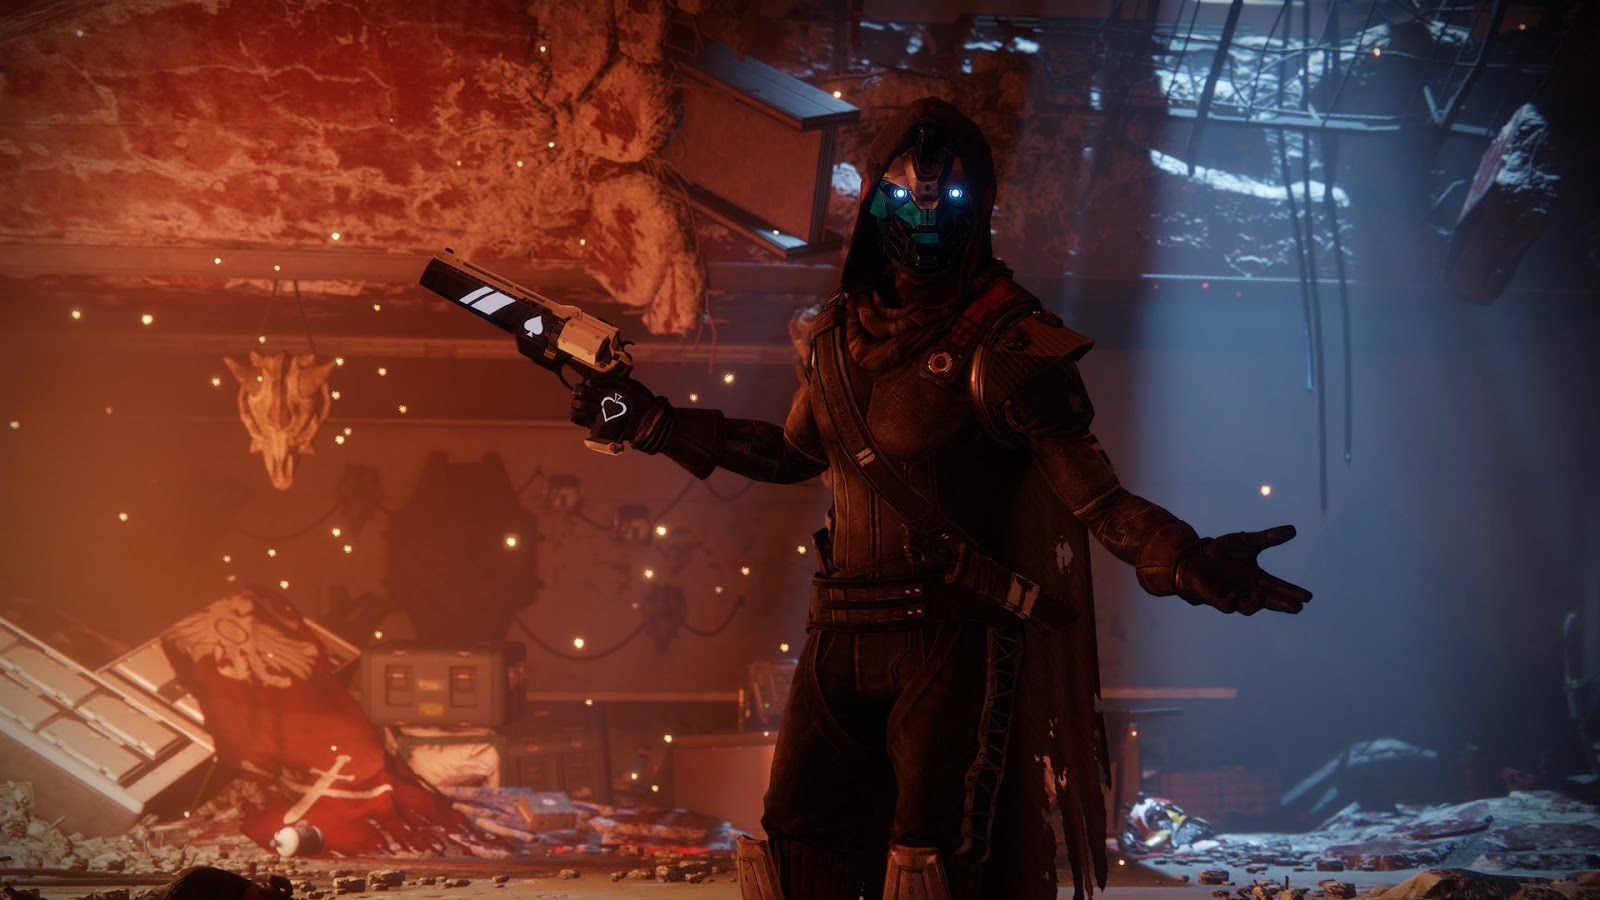 Destiny 2 will have yet another outage next week screenshot